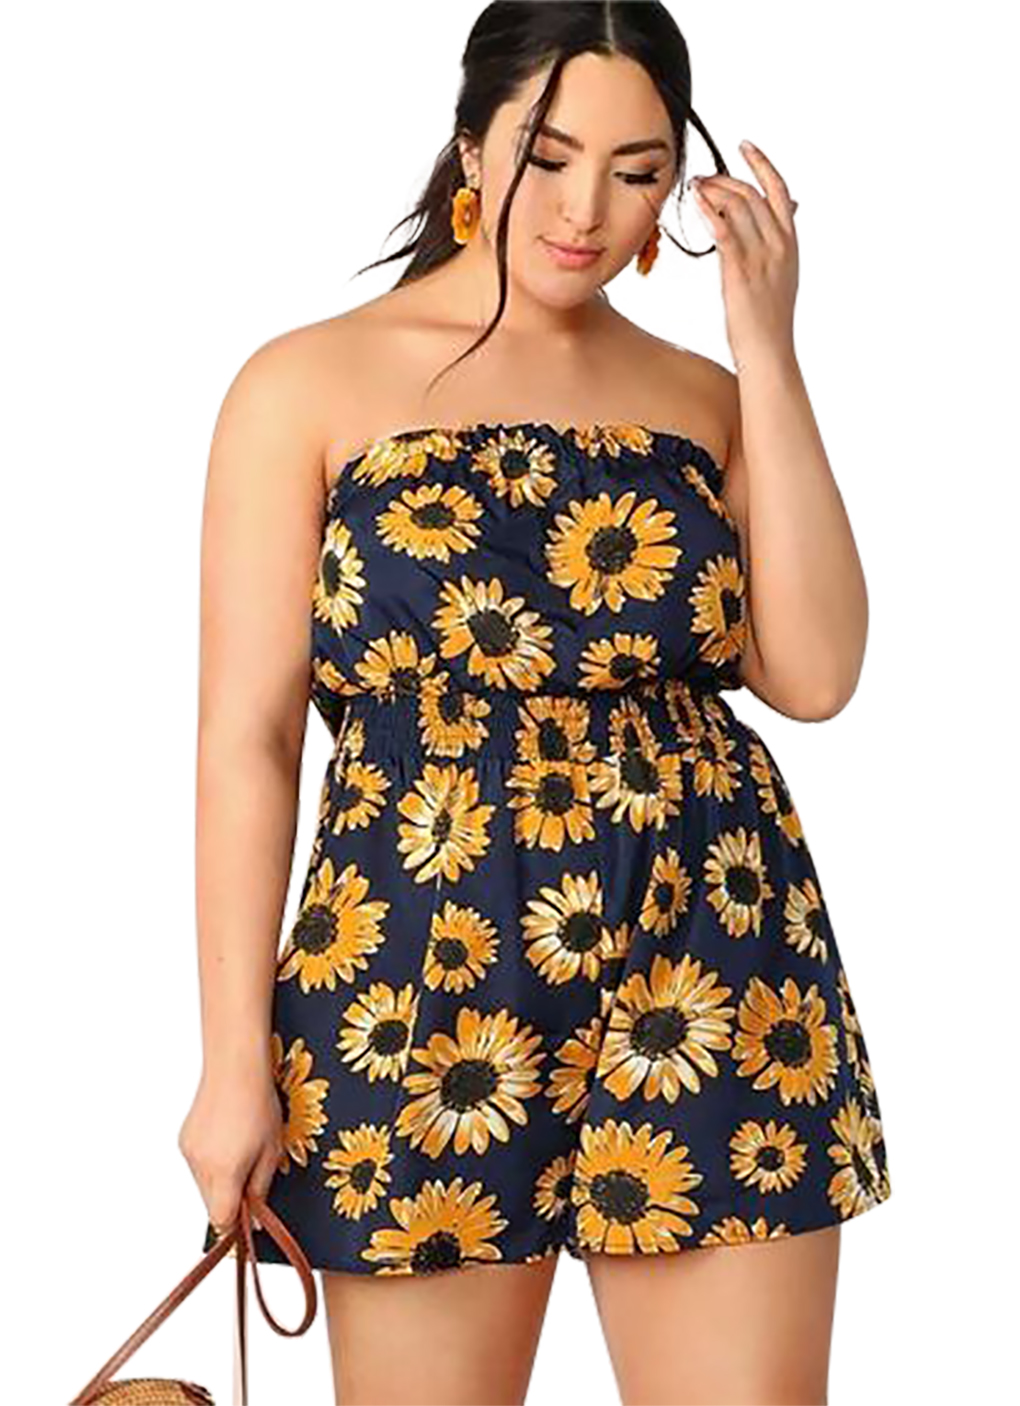 Women's Sunflower Graphic Romper Summer Jumpsuit Sexy Strapless Sleeveless Jumpsuit Ladies Rompers Beach Bodysuit Ladies Clothes